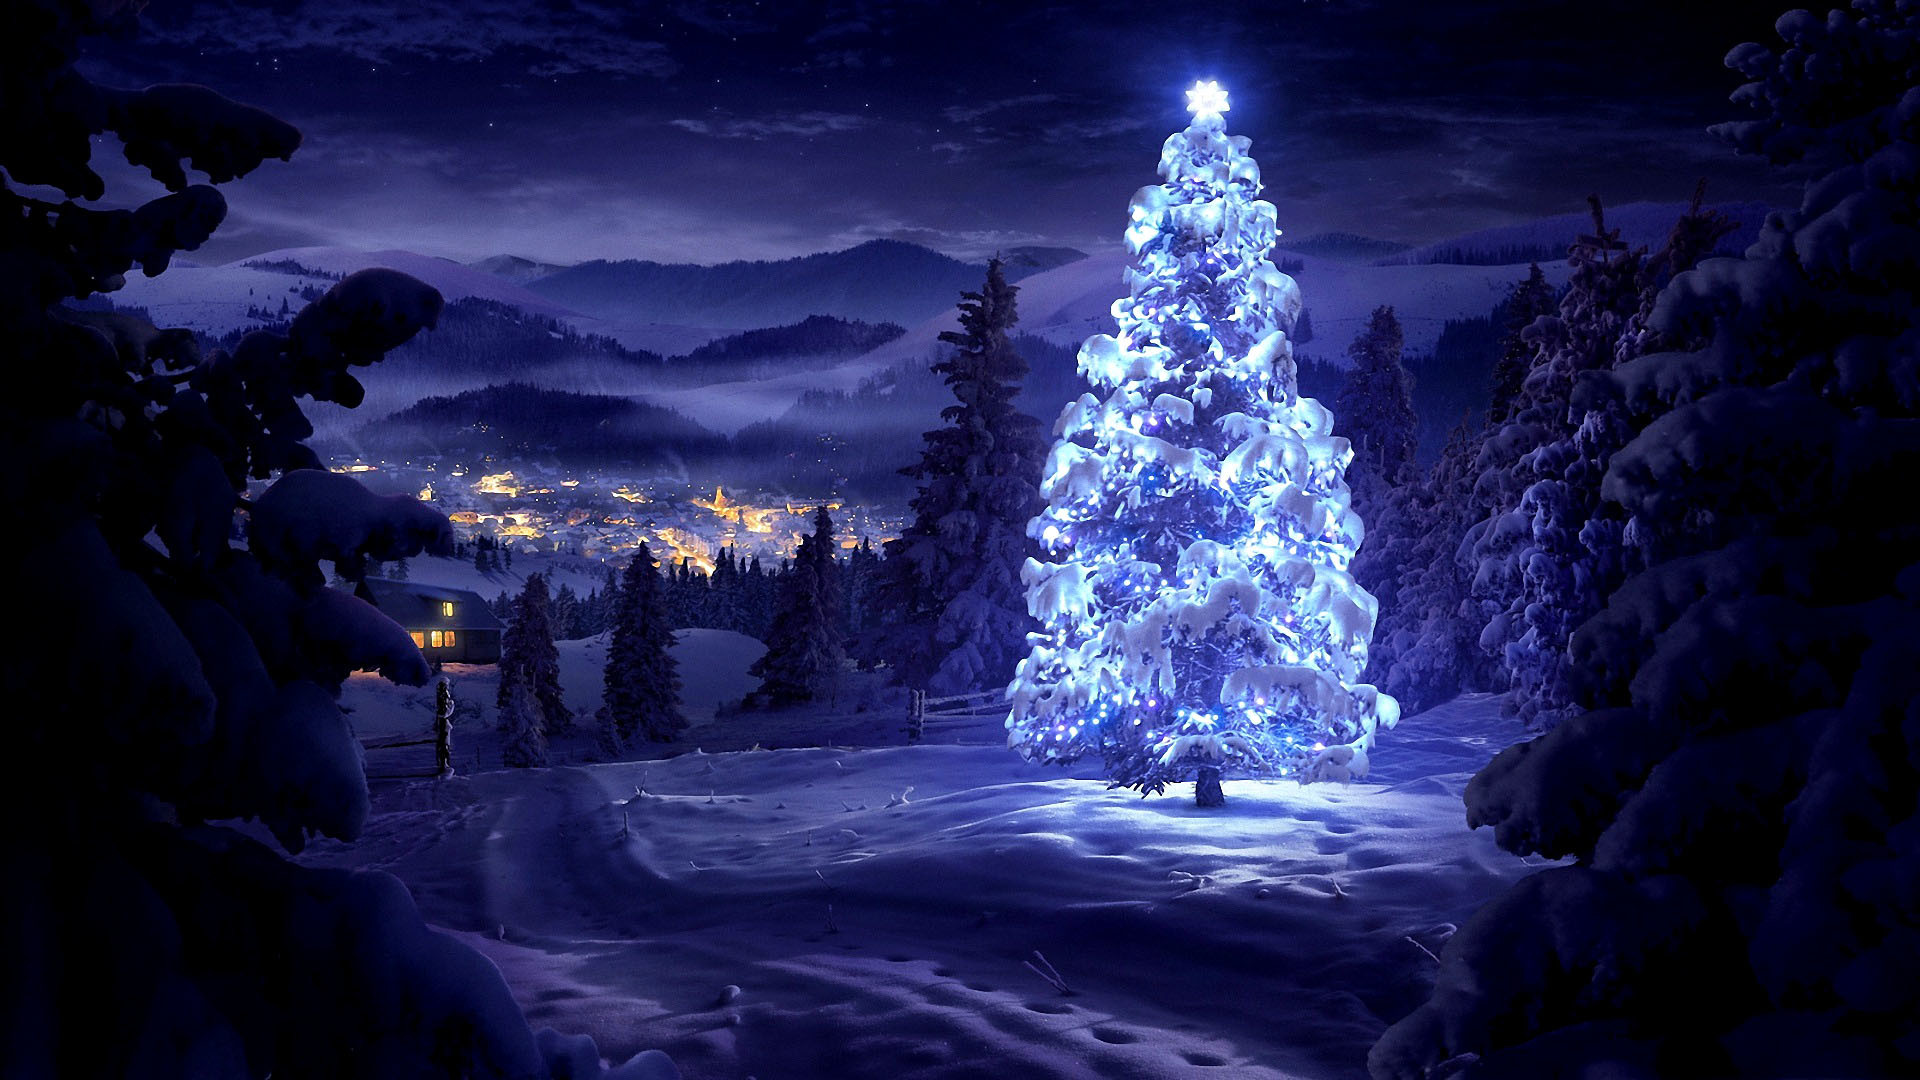 Girl Live Wallpaper Iphone 3d Animated Christmas Wallpapers 62 Images